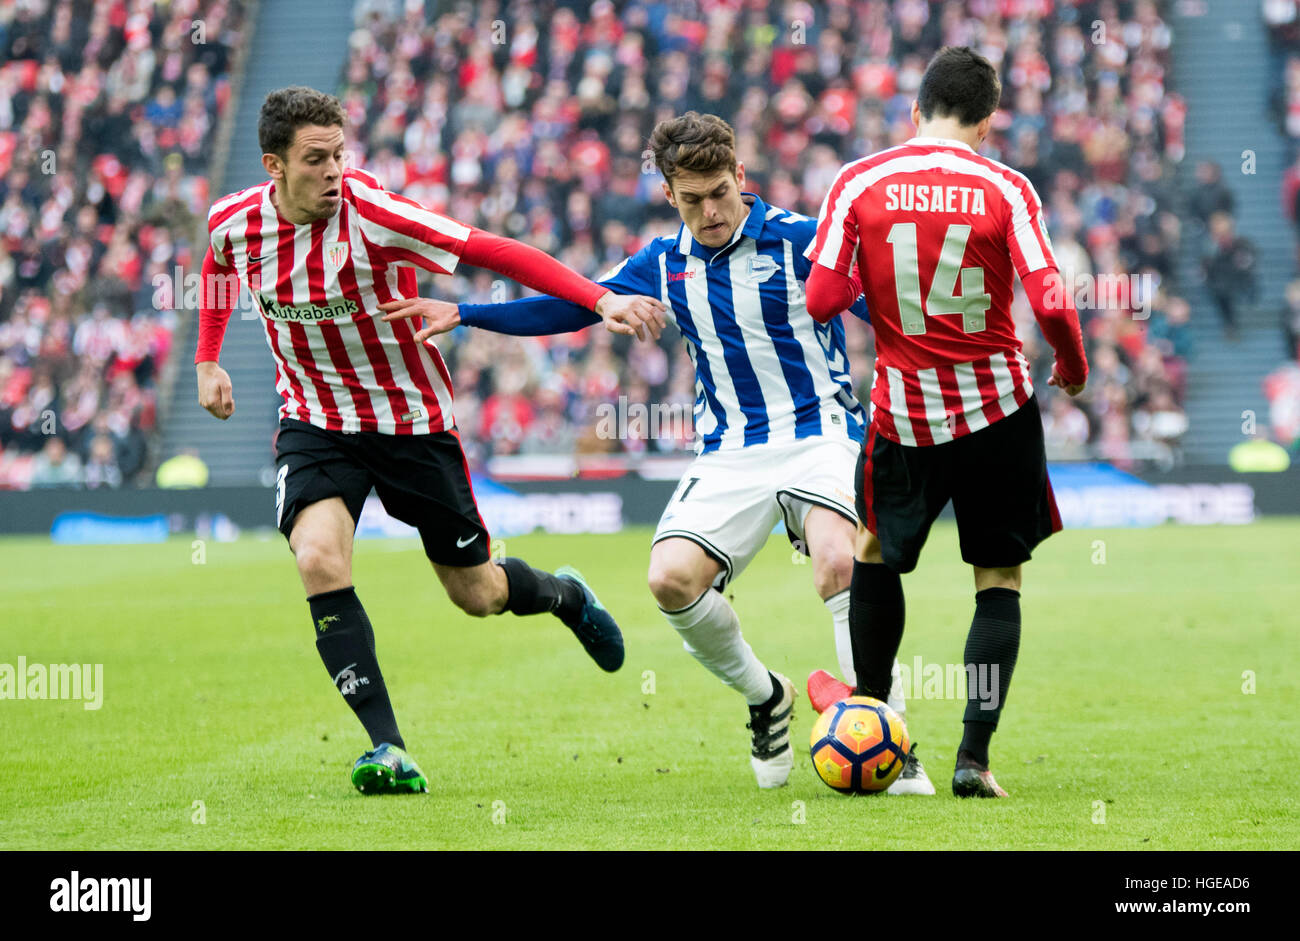 Bilbao, Spain. 8th January, 2017. Ibai Gomez (Forward, Alaves) in action covered by Markel Susaeta (Mildfierder, - Stock Image